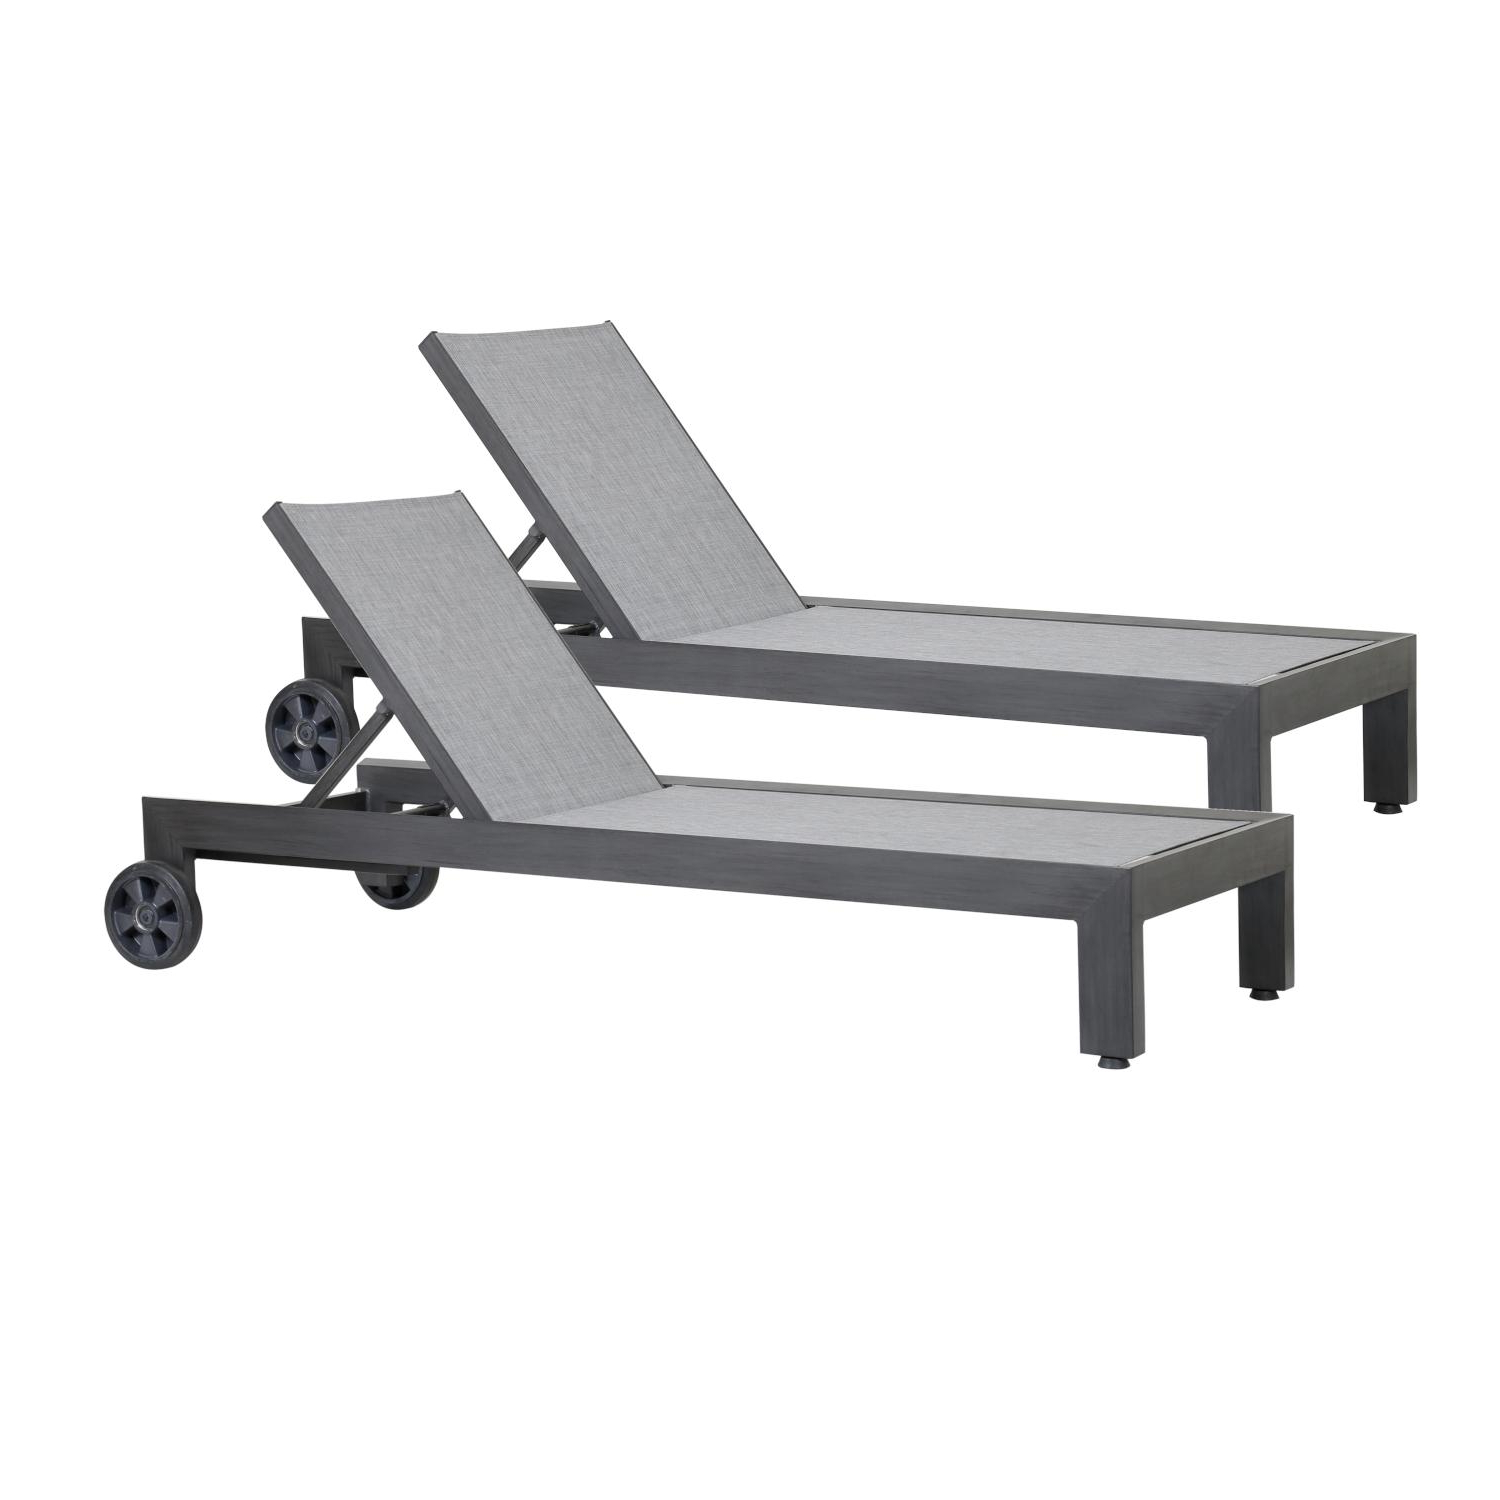 Newest Navan Outdoor Aluminum Chaise Lounges With Cushion Inside Sunset West Redondo 2 Piece Aluminum Patio Chaise Lounge Set (Gallery 21 of 25)